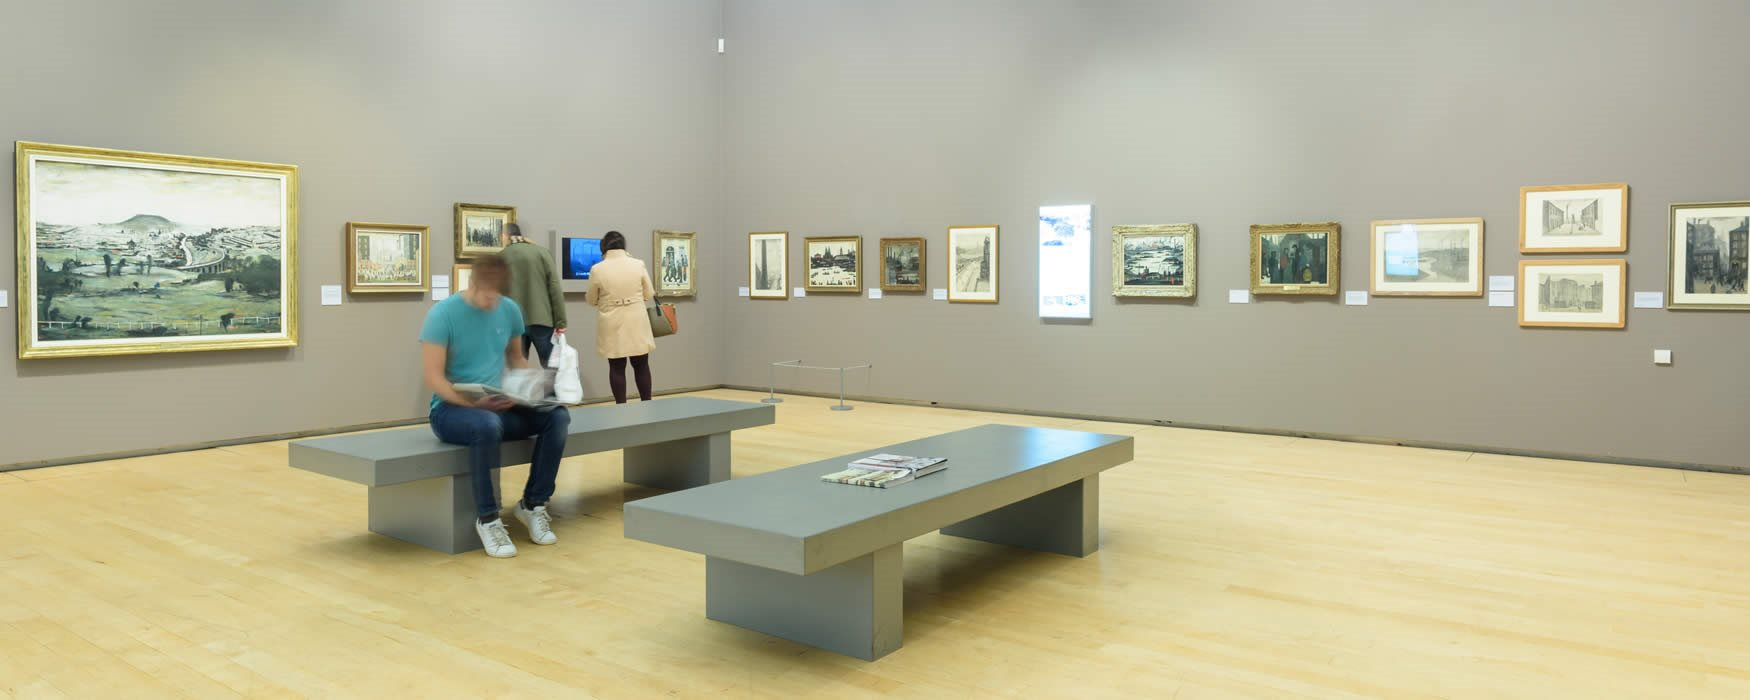 Experience art and culture in Manchester